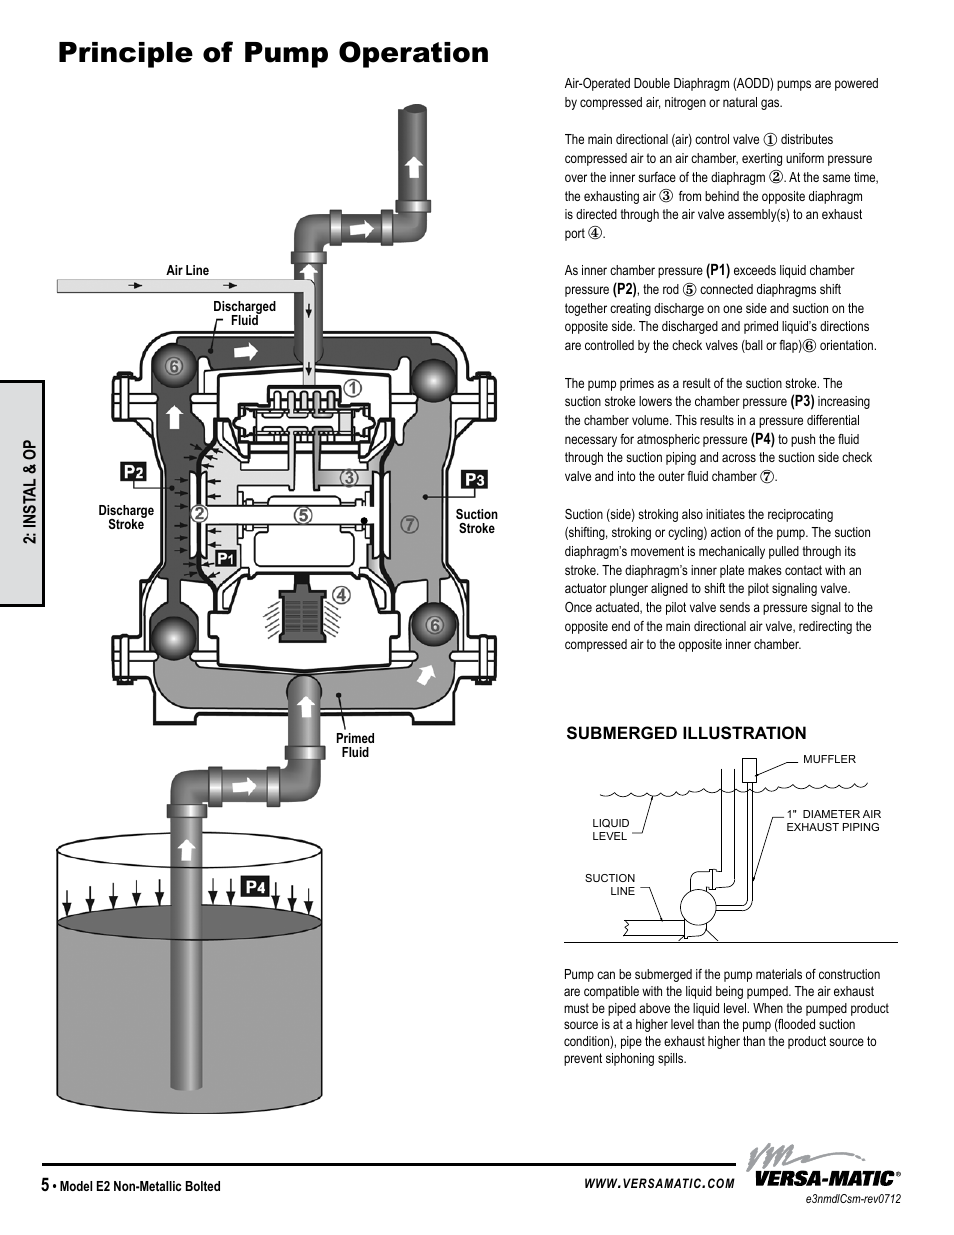 Versamatic Pump Diagram Wiring For You Compressed Air Schematic Principle Of Operation Model Specific Versa Matic 3 Elima Abs